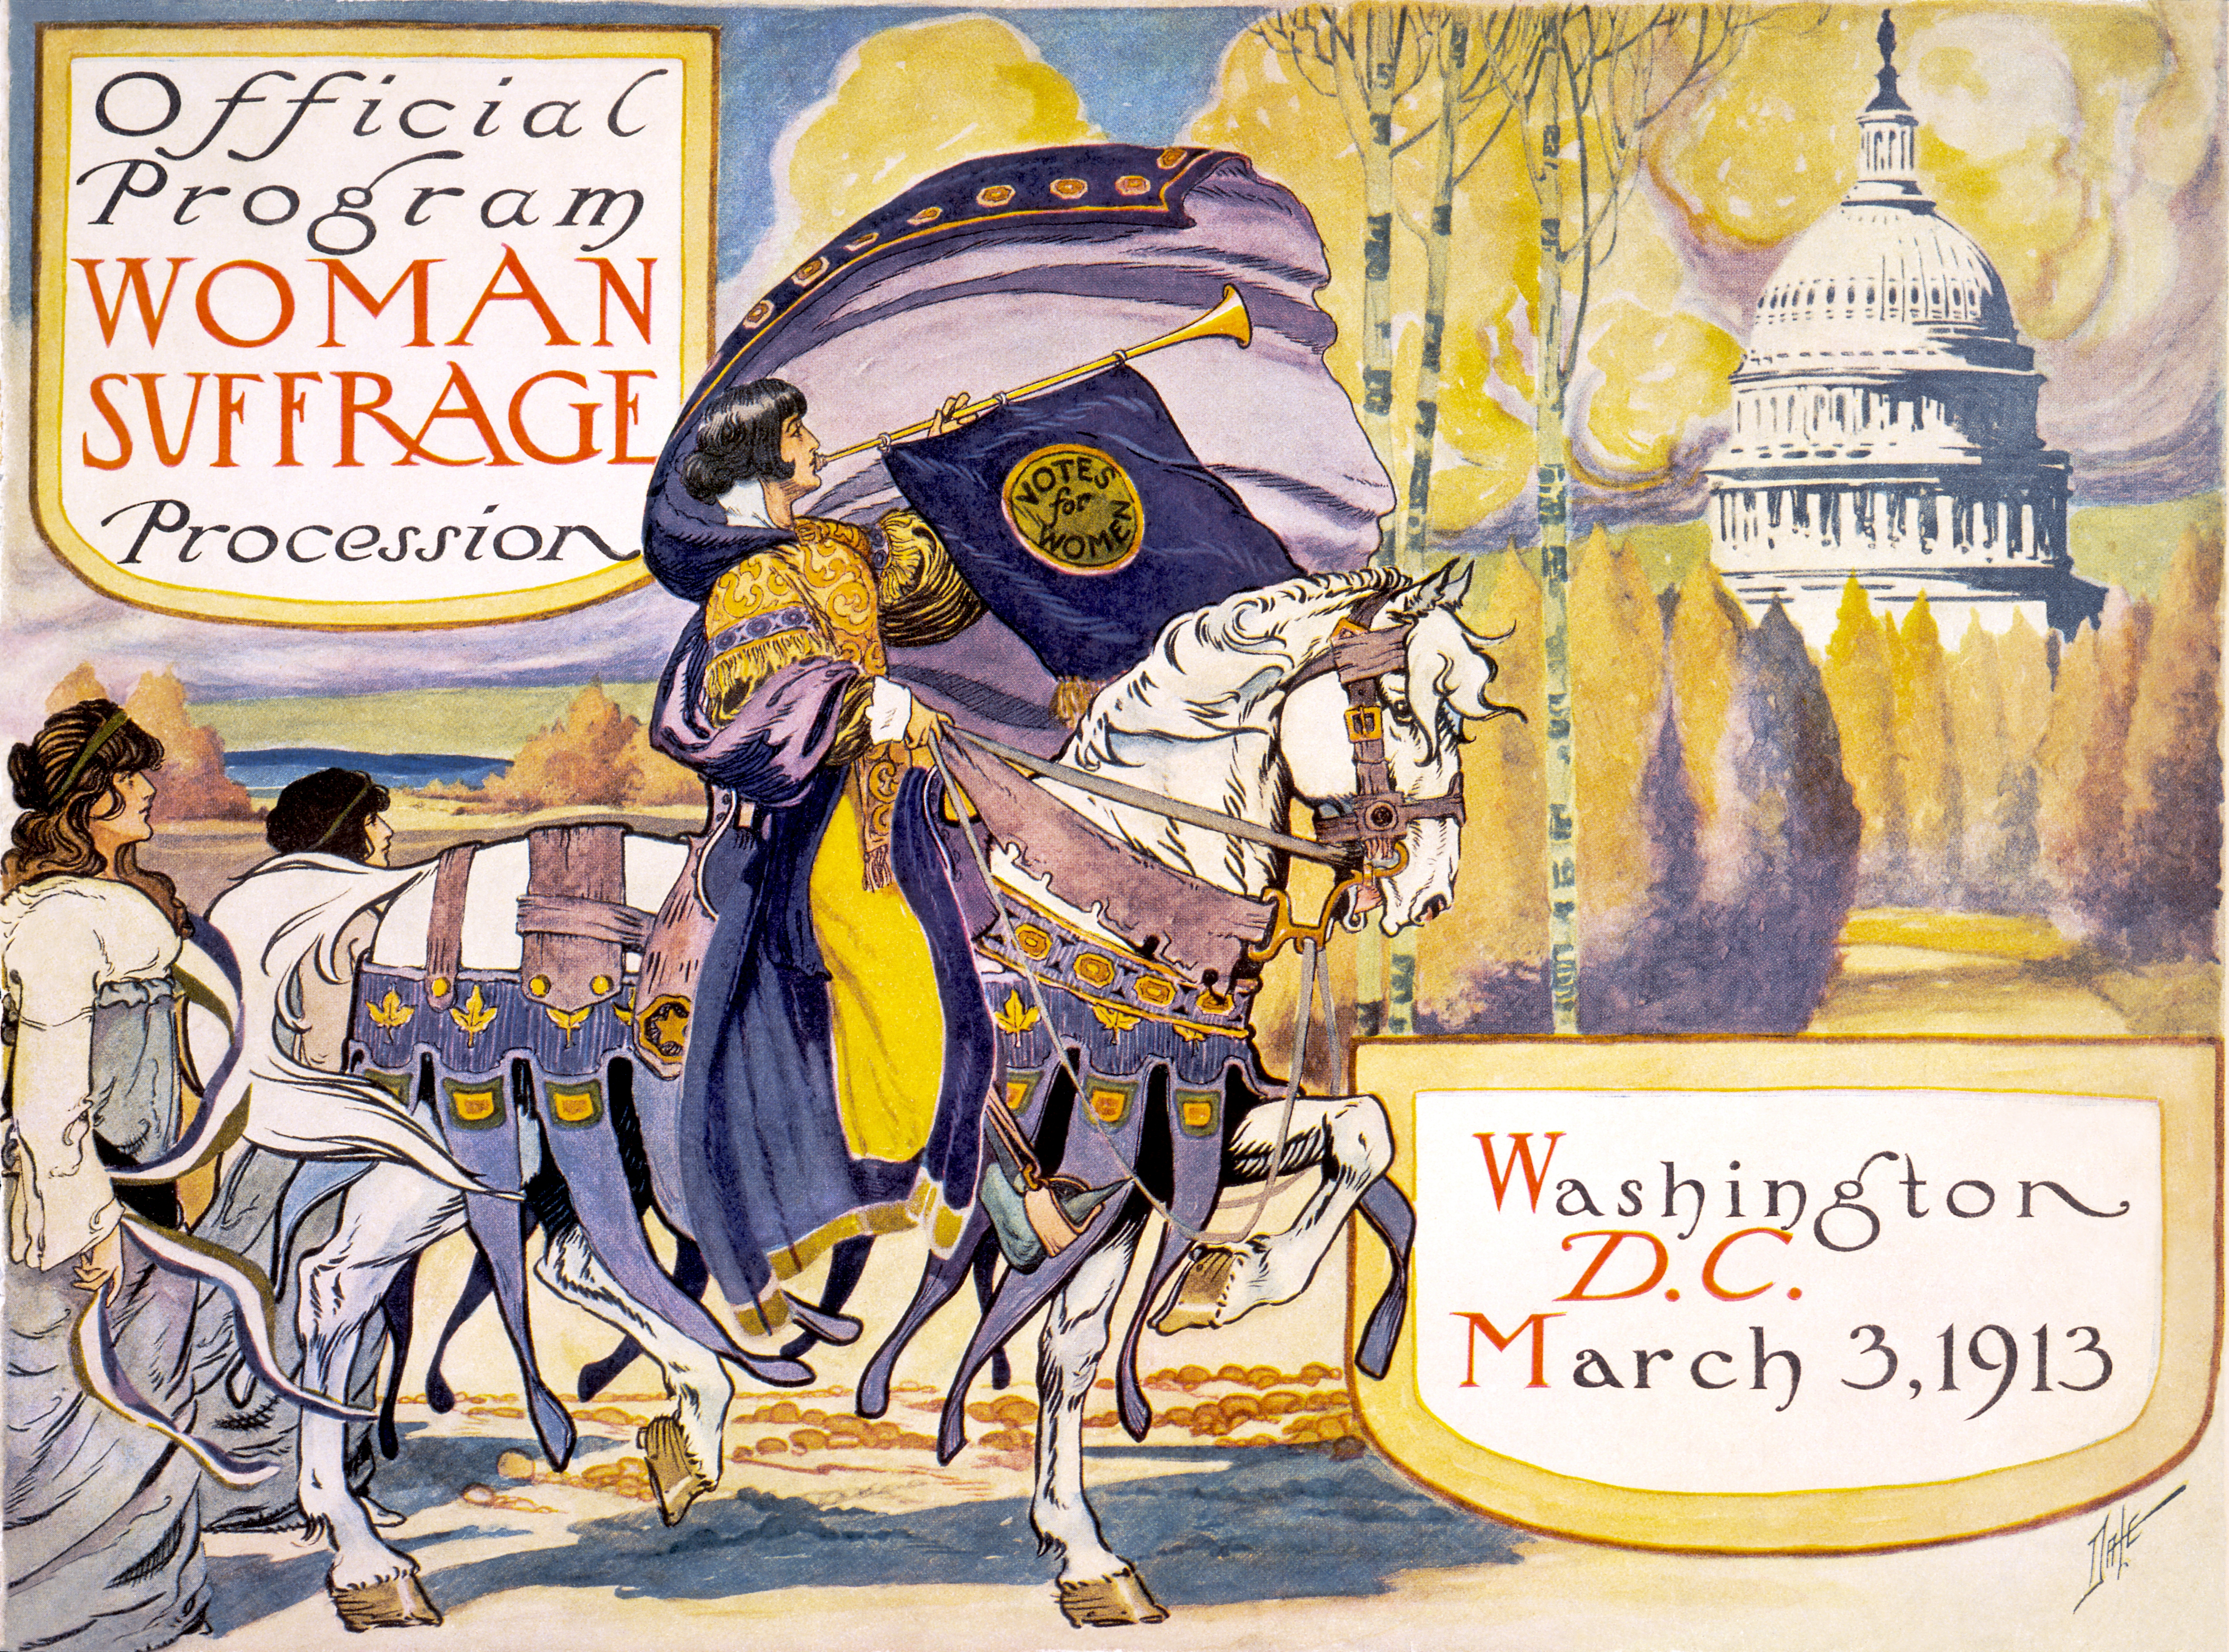 Official Program for Woman Suffrage Procession, March 3, 913